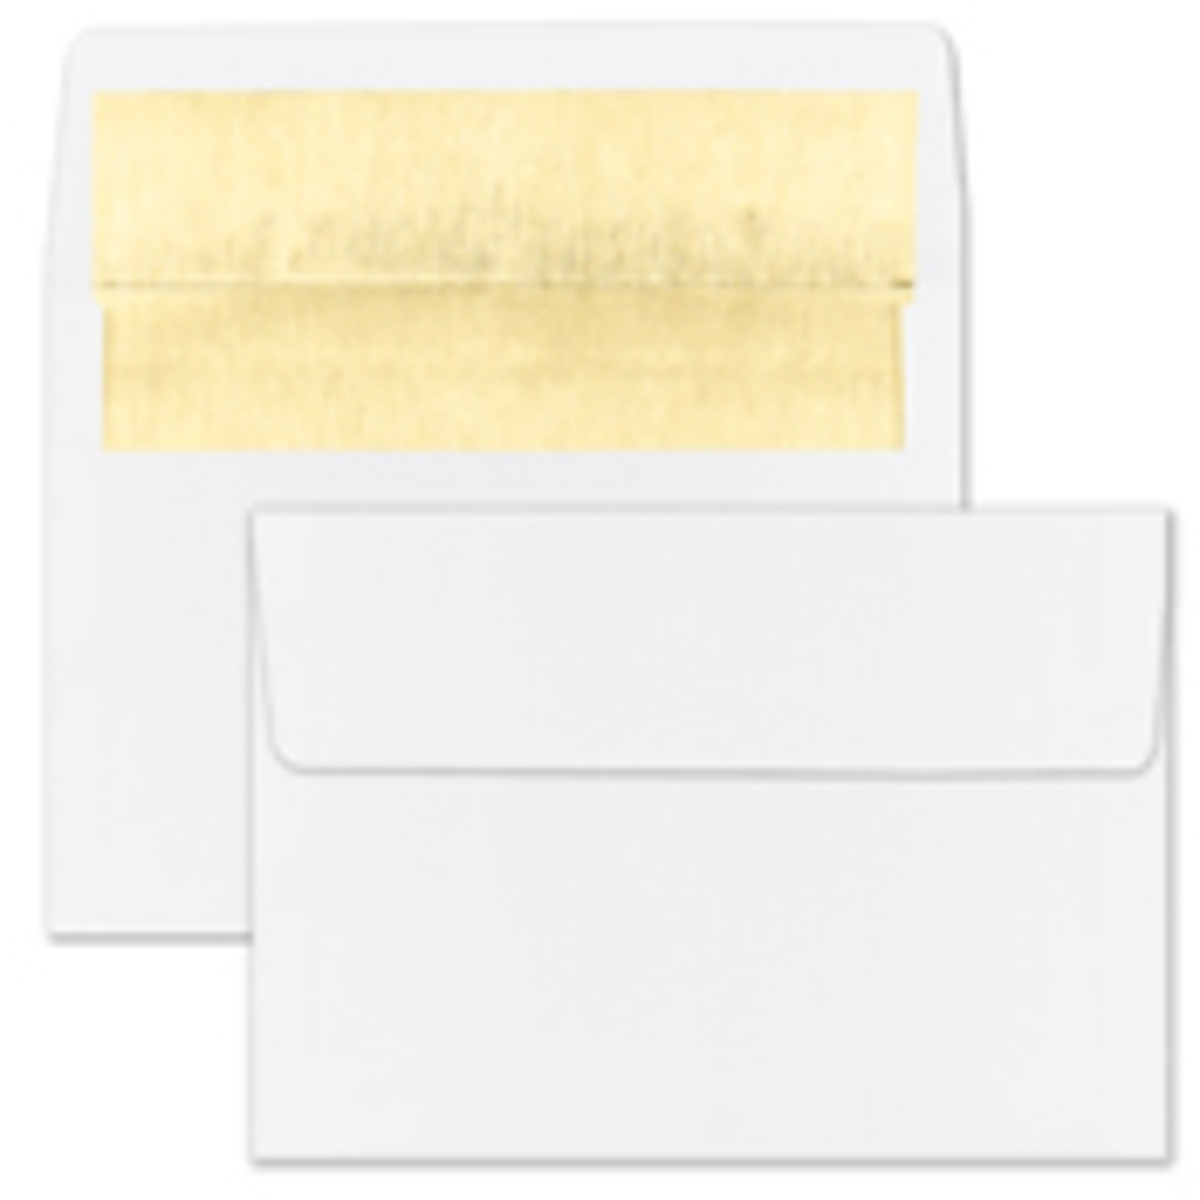 Recycled Gold Foil Lined White Envelope - Blank